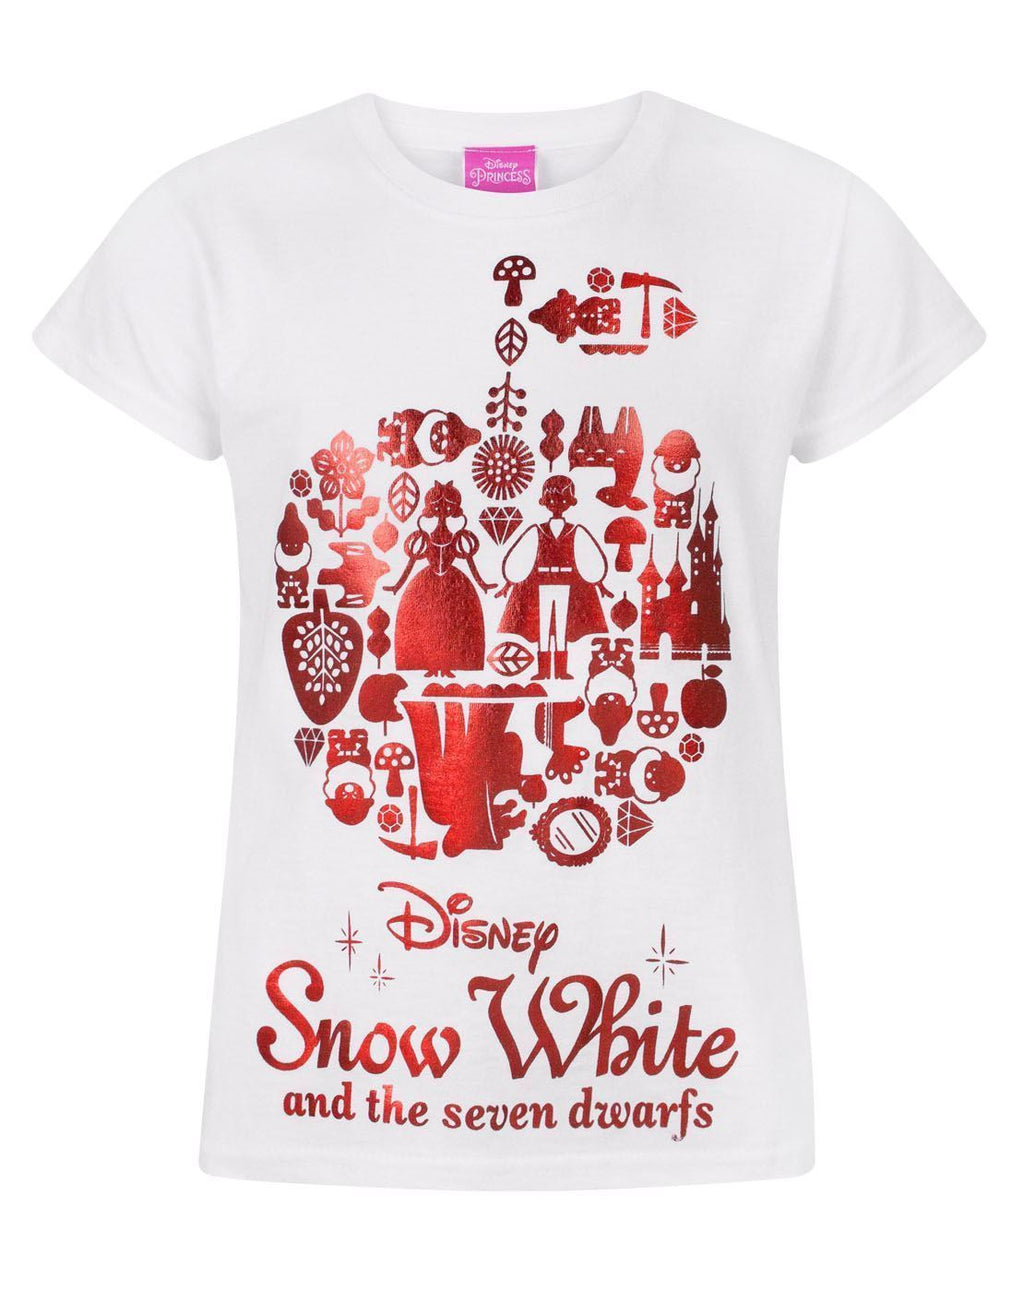 Disney Snow White Red Foil Girl's T-Shirt